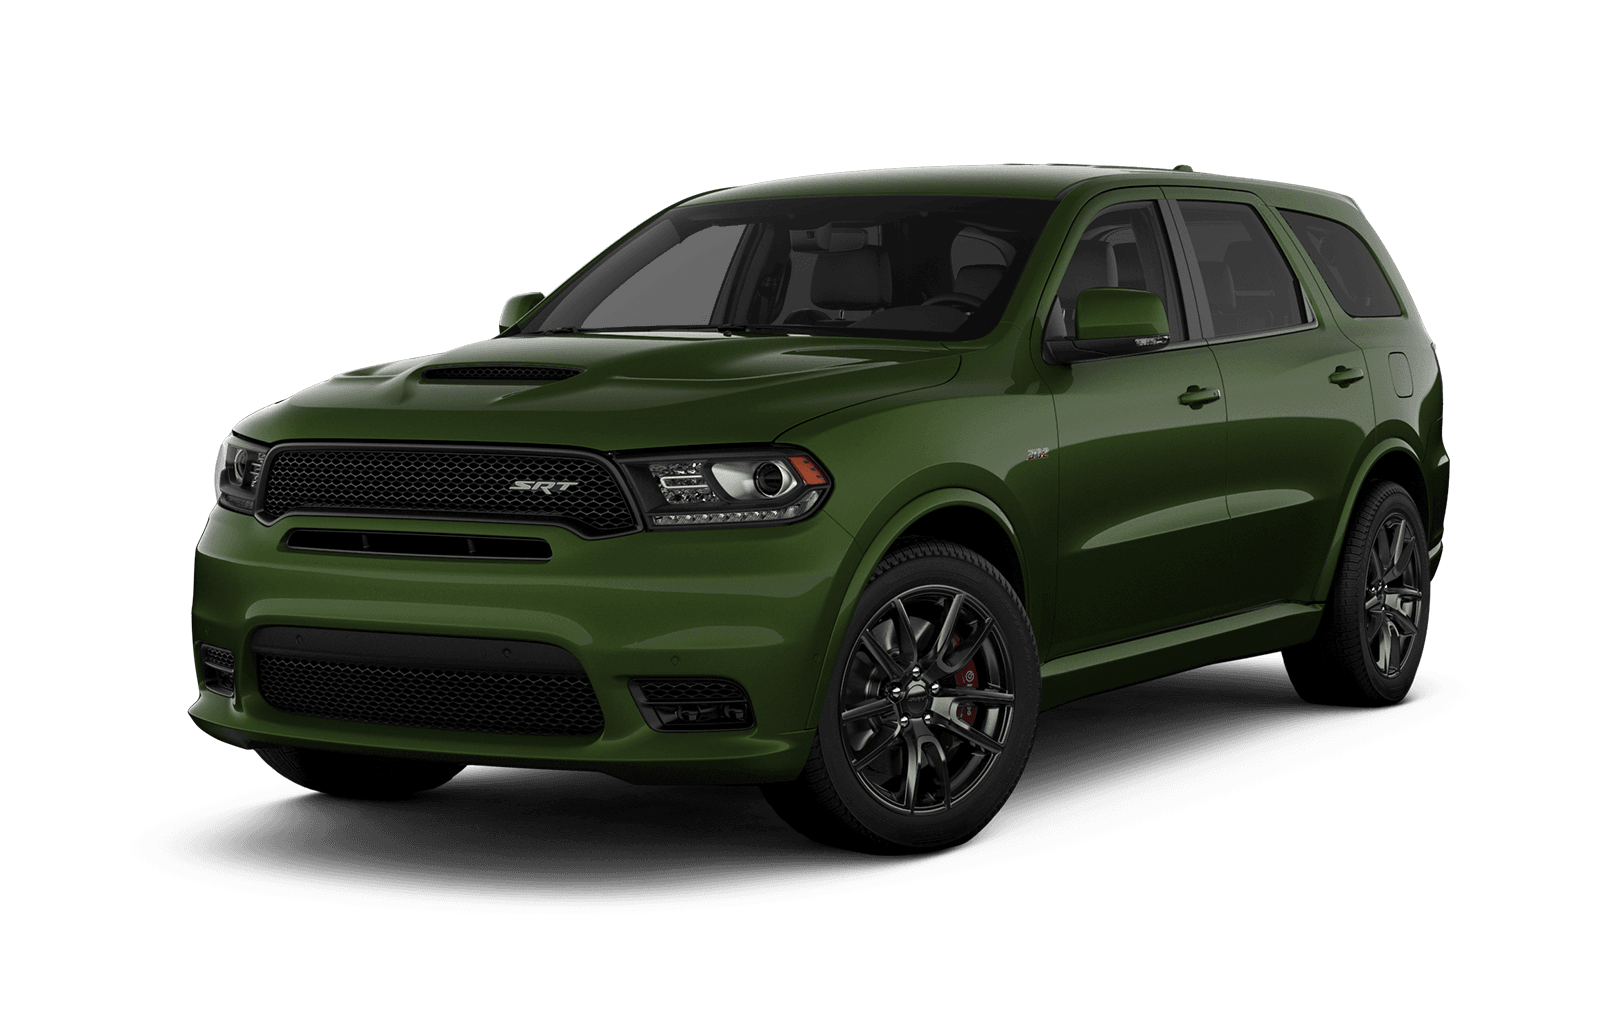 2019 Dodge Durango Full view in Green